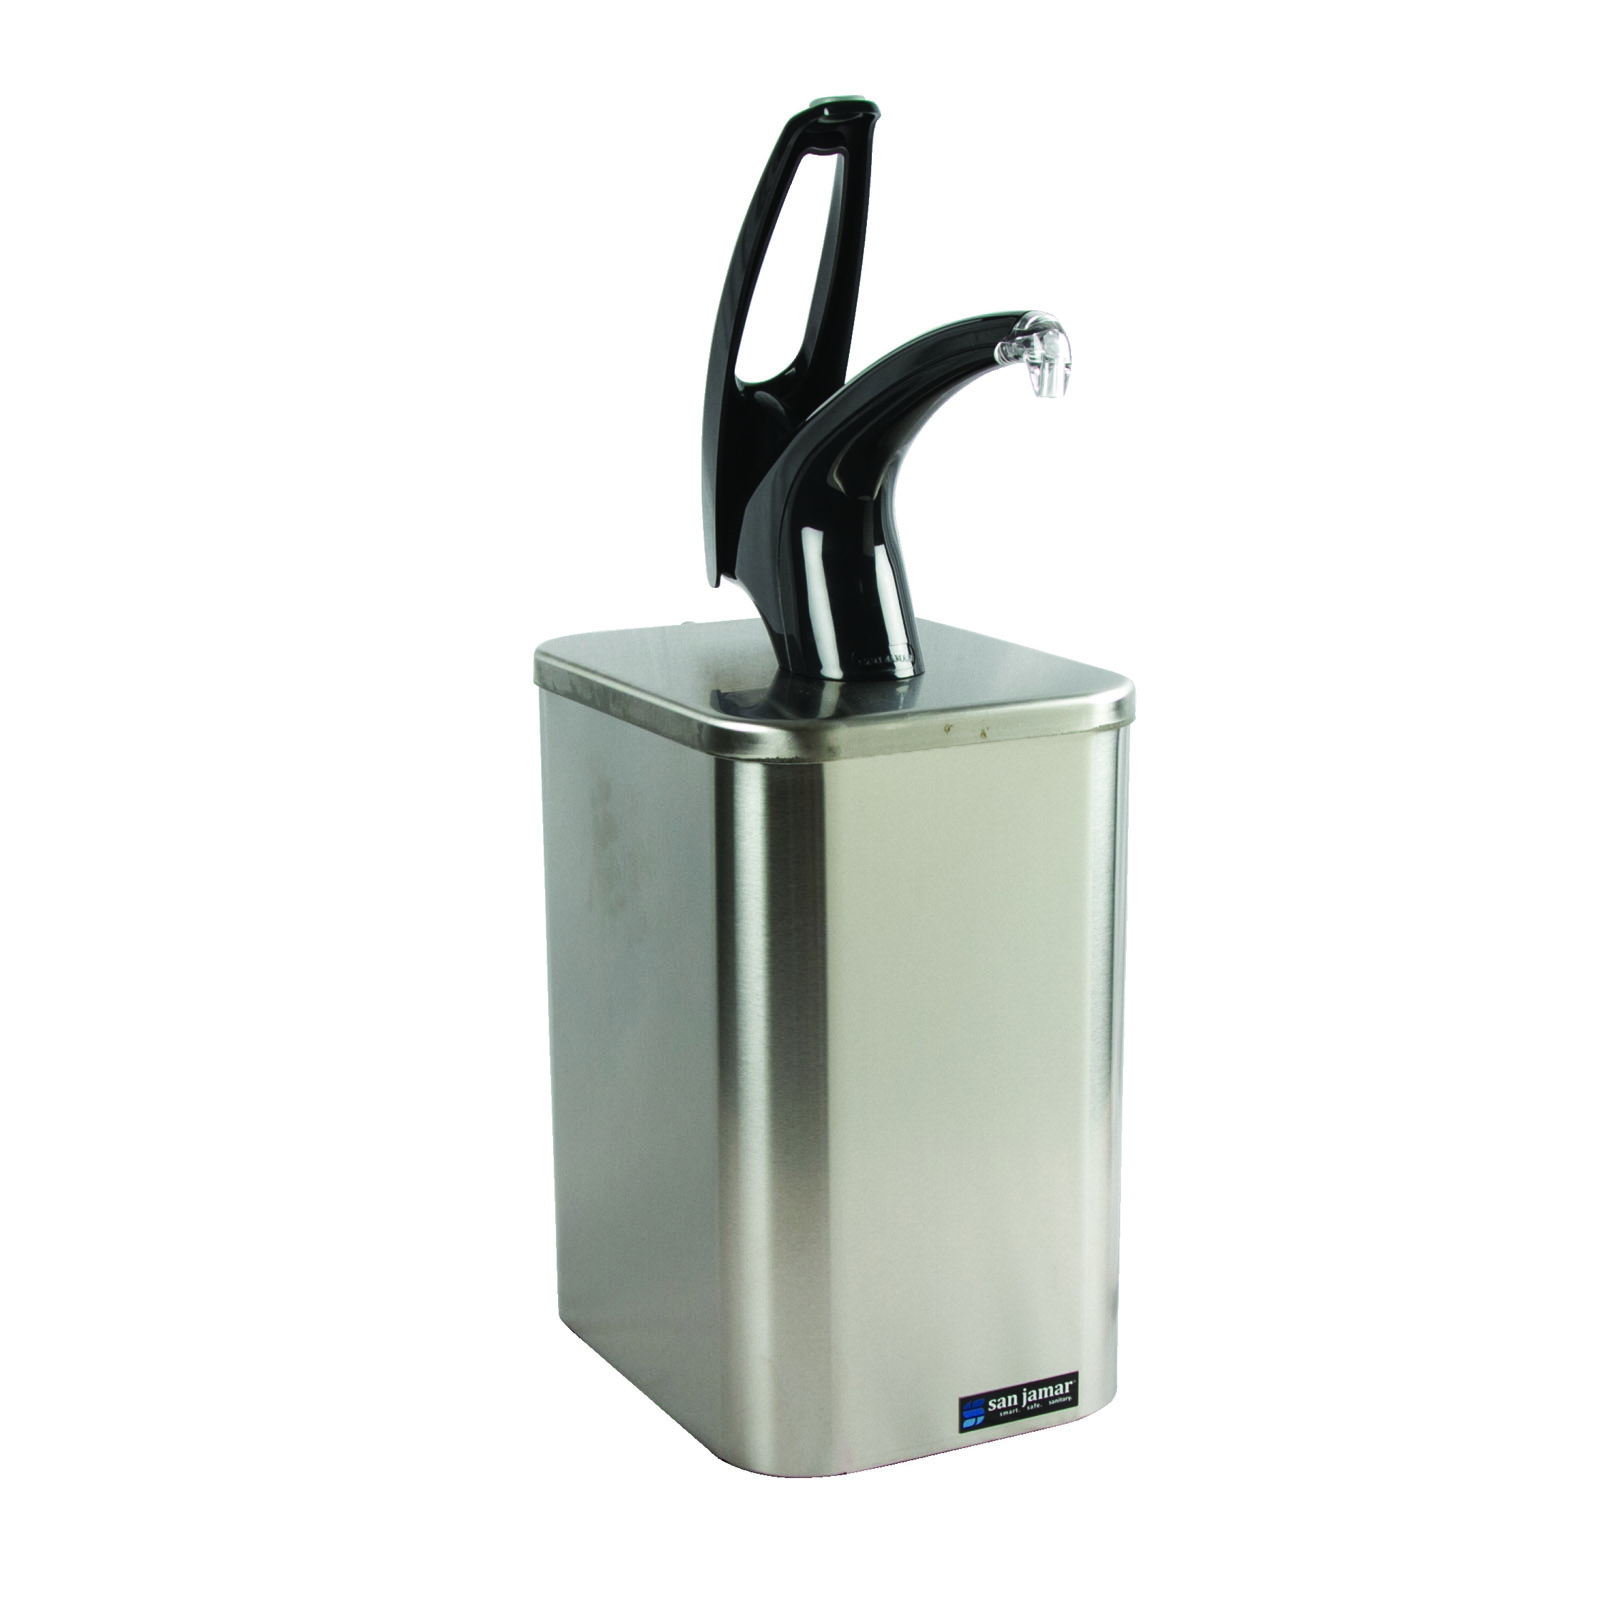 San Jamar P4900BK condiment dispenser pump-style